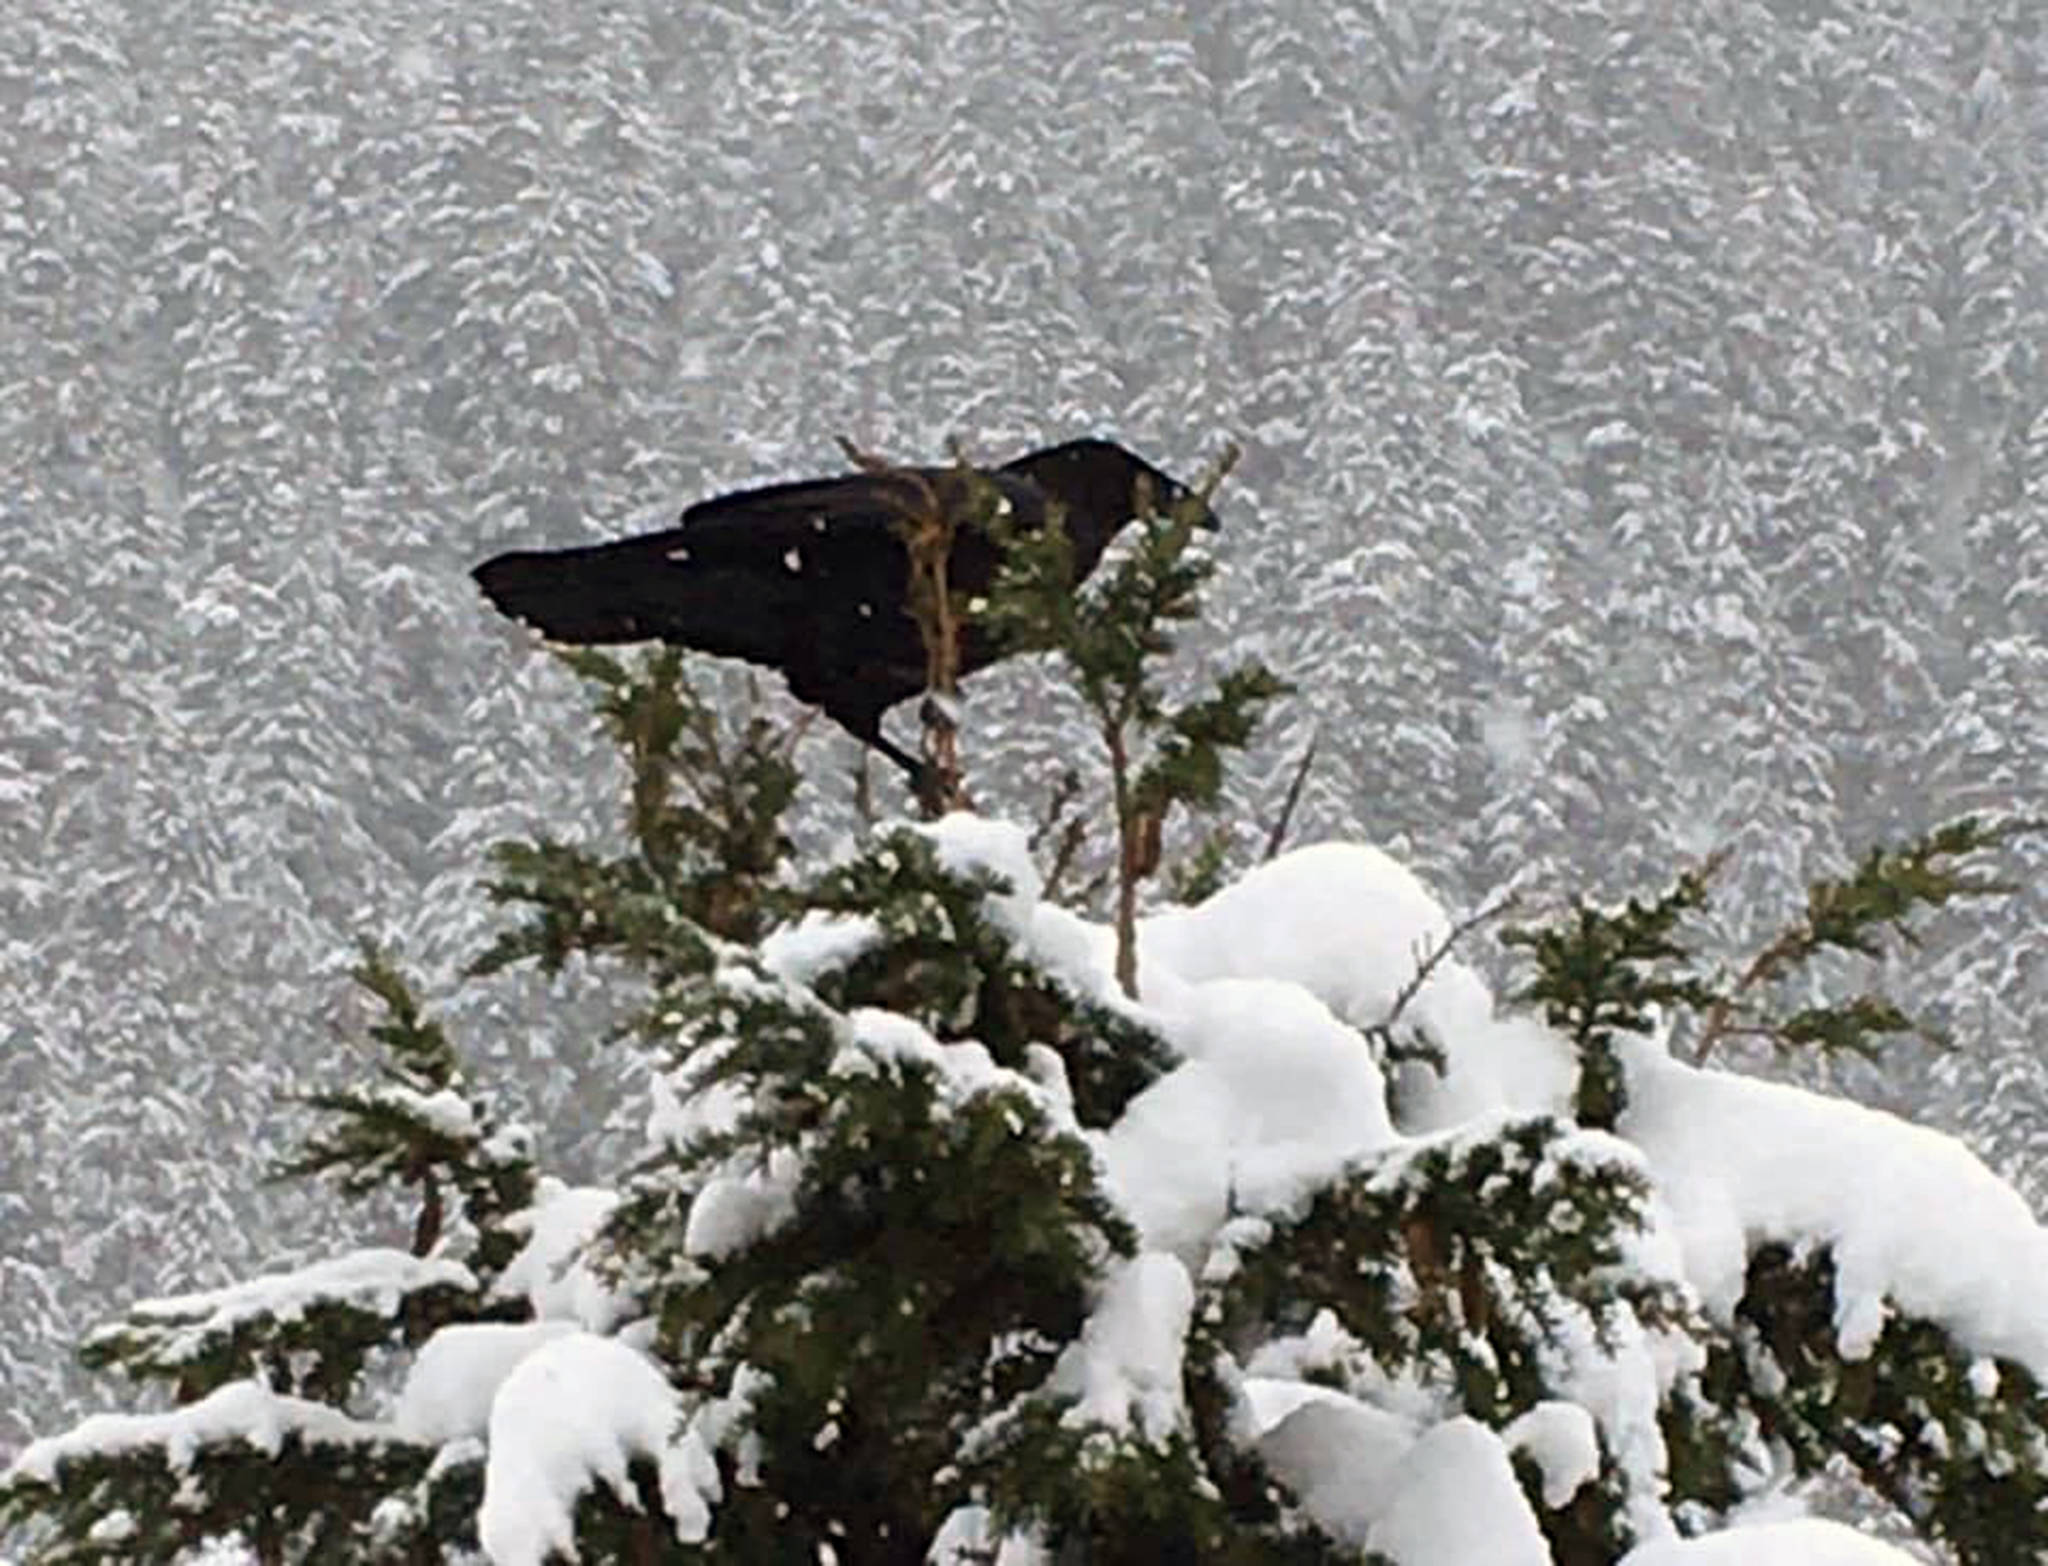 A raven perches on top of a tree in the Costco parking lot on Feb. 3. (Courtesy photo | Barbara Belknap)